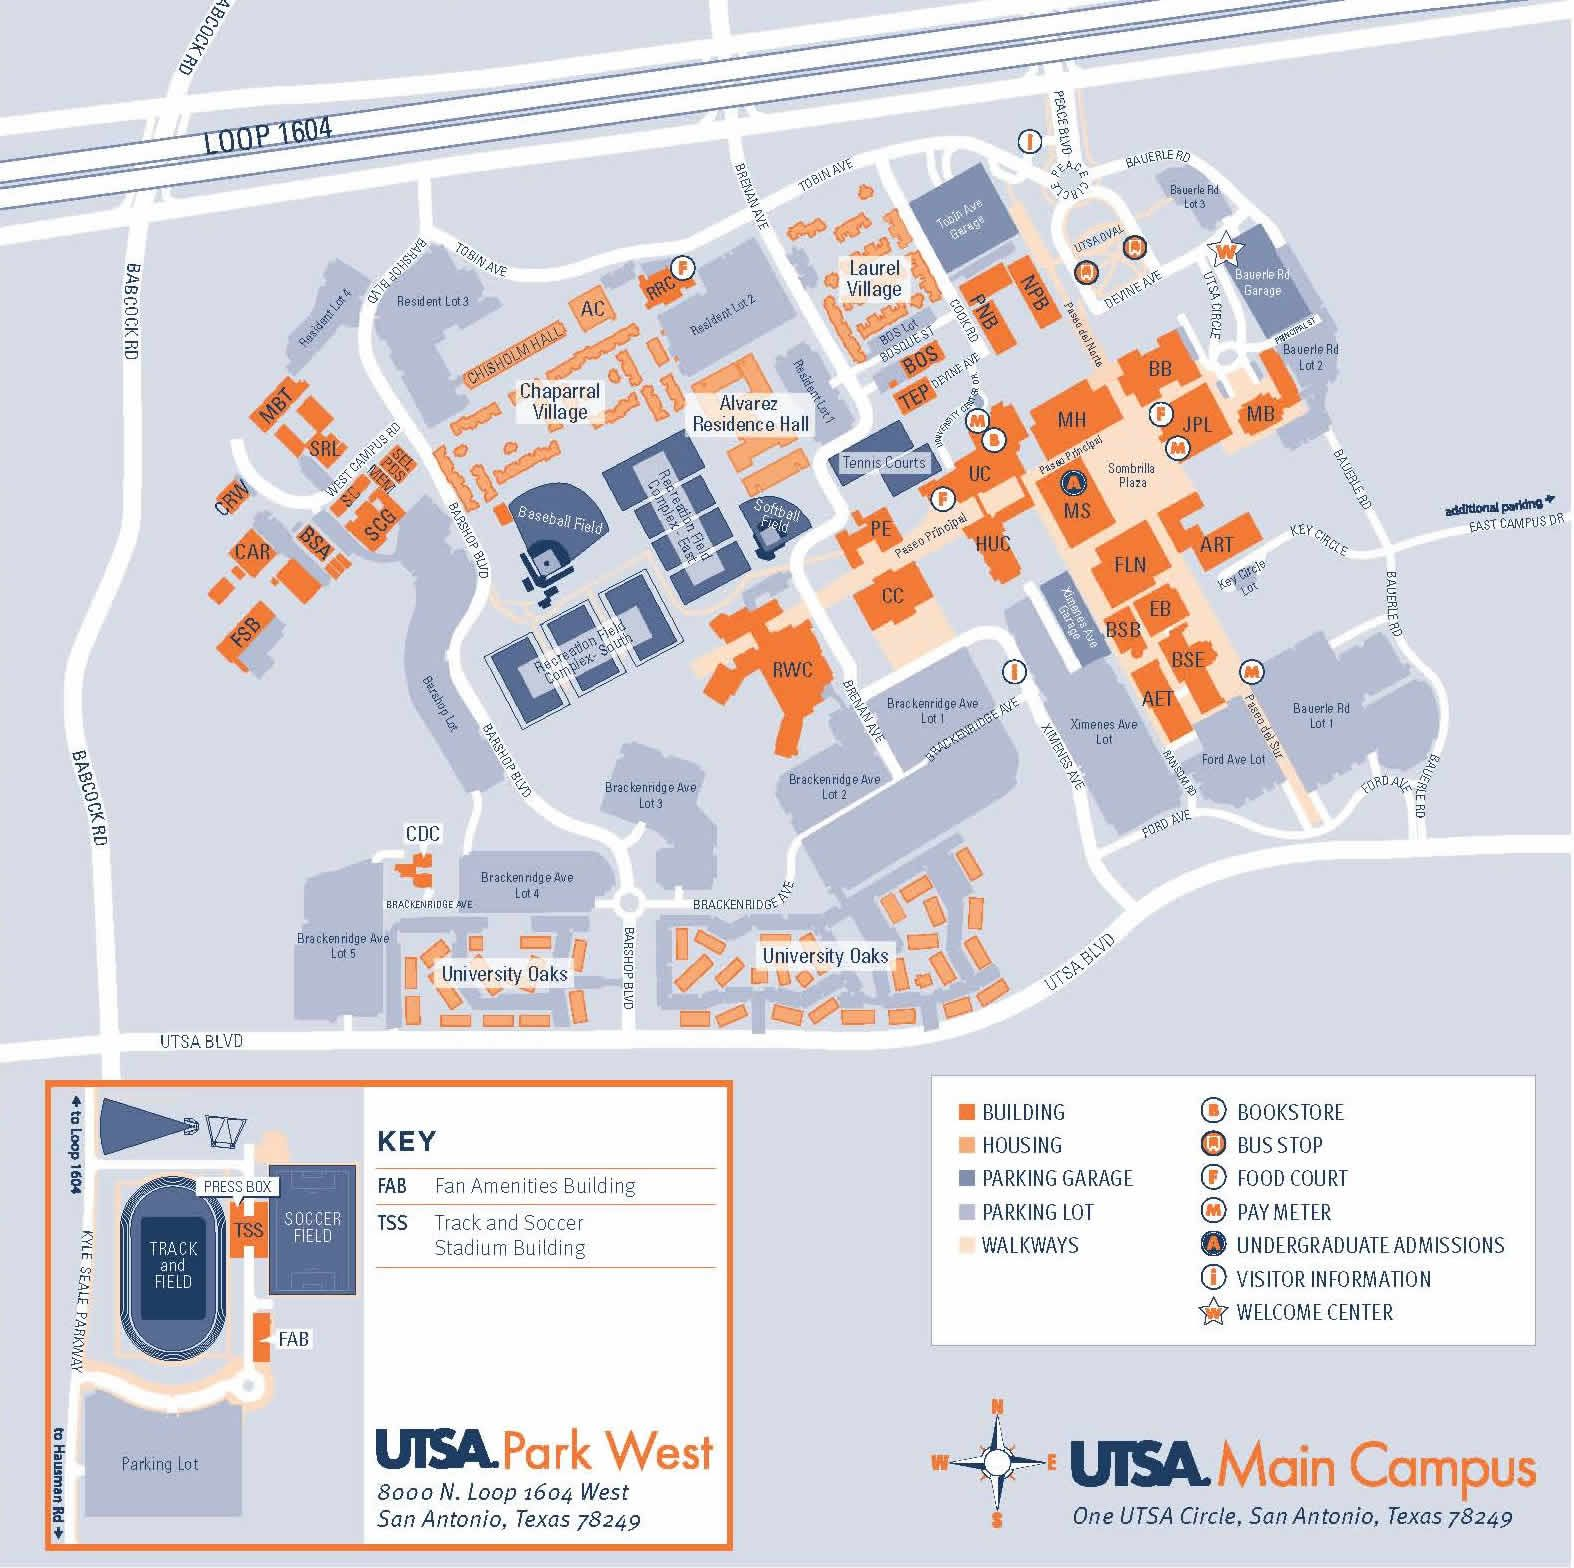 Main Campus Map UTSA | University | Campus map, University ... on sac campus map, rockford college map, wyoming college map, pasadena college map, gulf coast college map, miami college map, city college of san francisco map, grand canyon college map, albany college map, valparaiso college map, oklahoma college map, hudson valley college map, buffalo college map, utah college map, long beach college map, denver college map, new jersey college map, university of houston college map, richmond college map, saint philips college map,